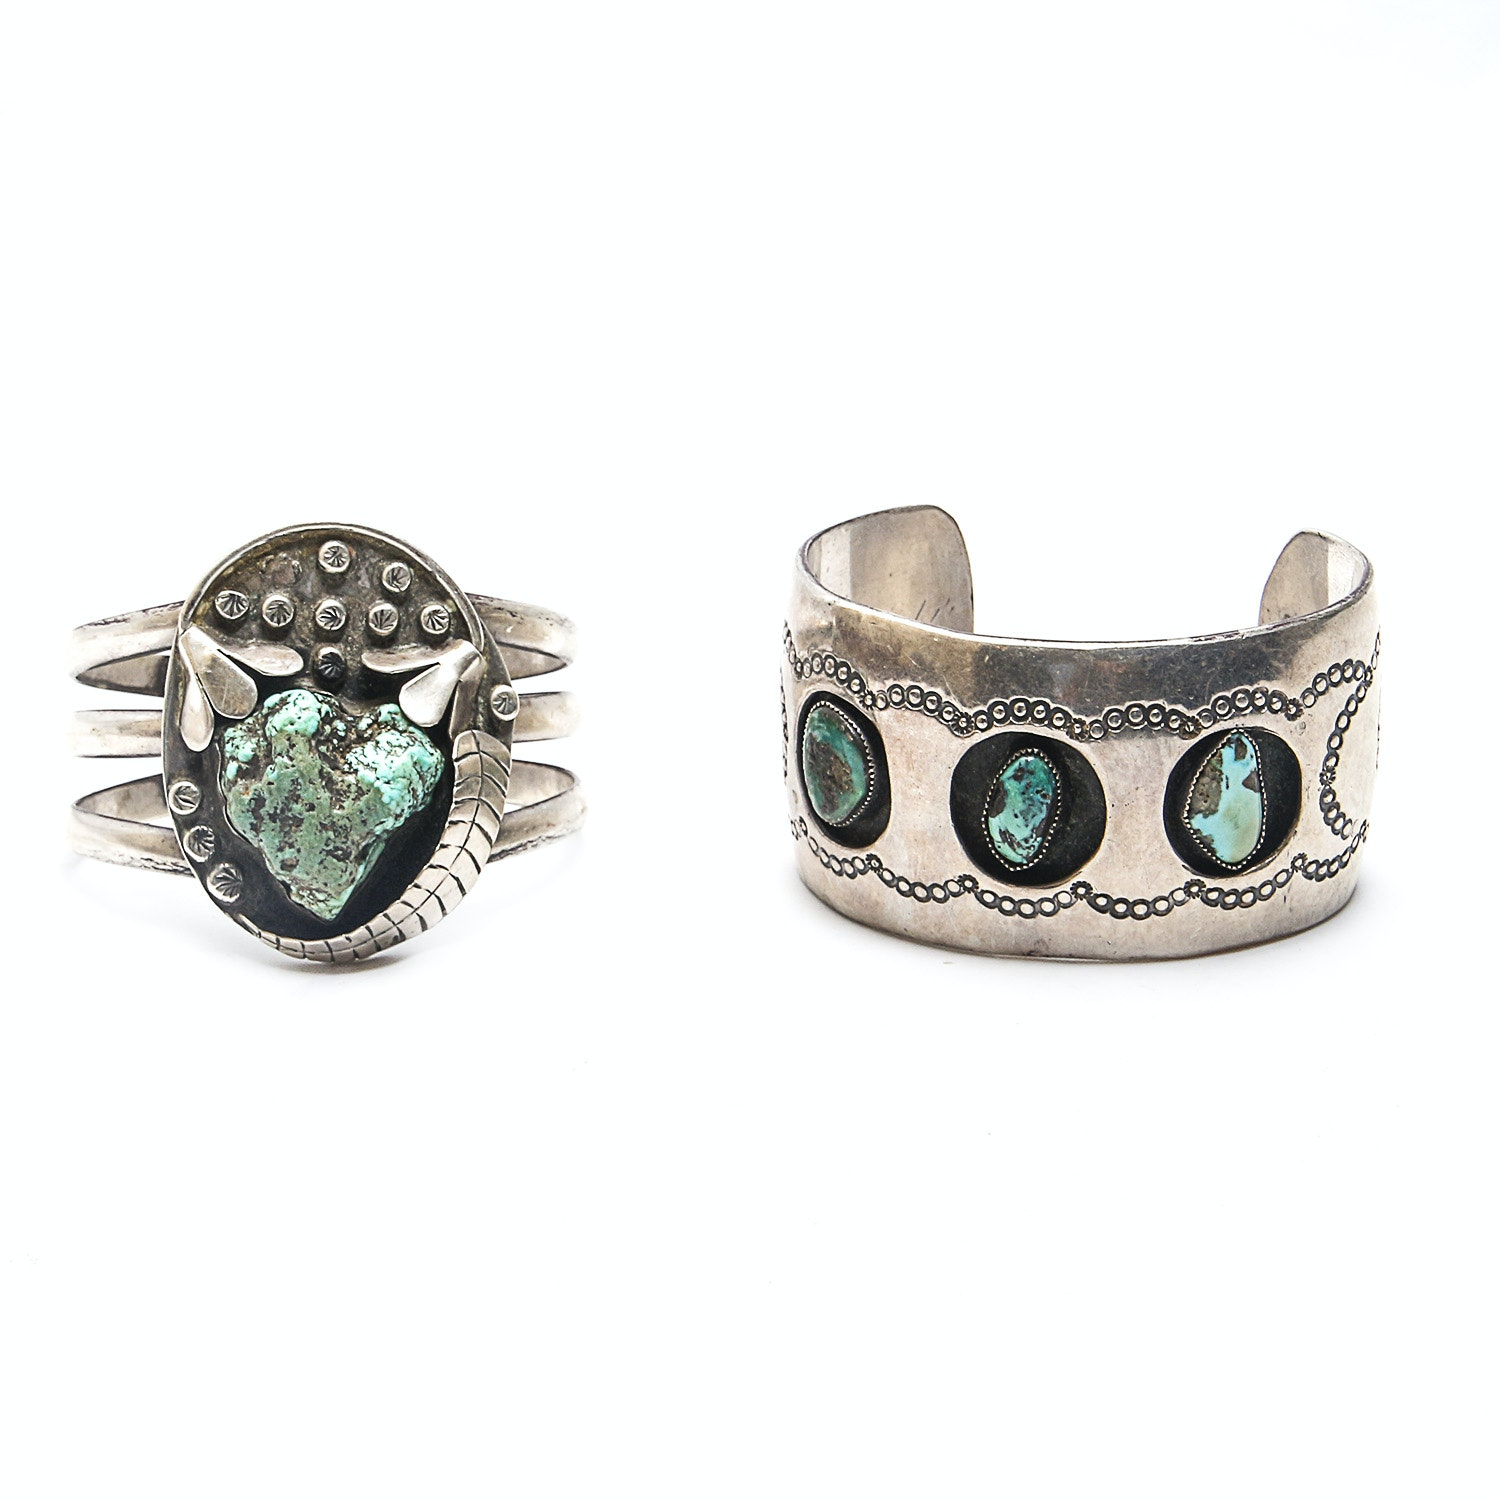 Native American Style Sterling Turquoise Cuff Bracelets